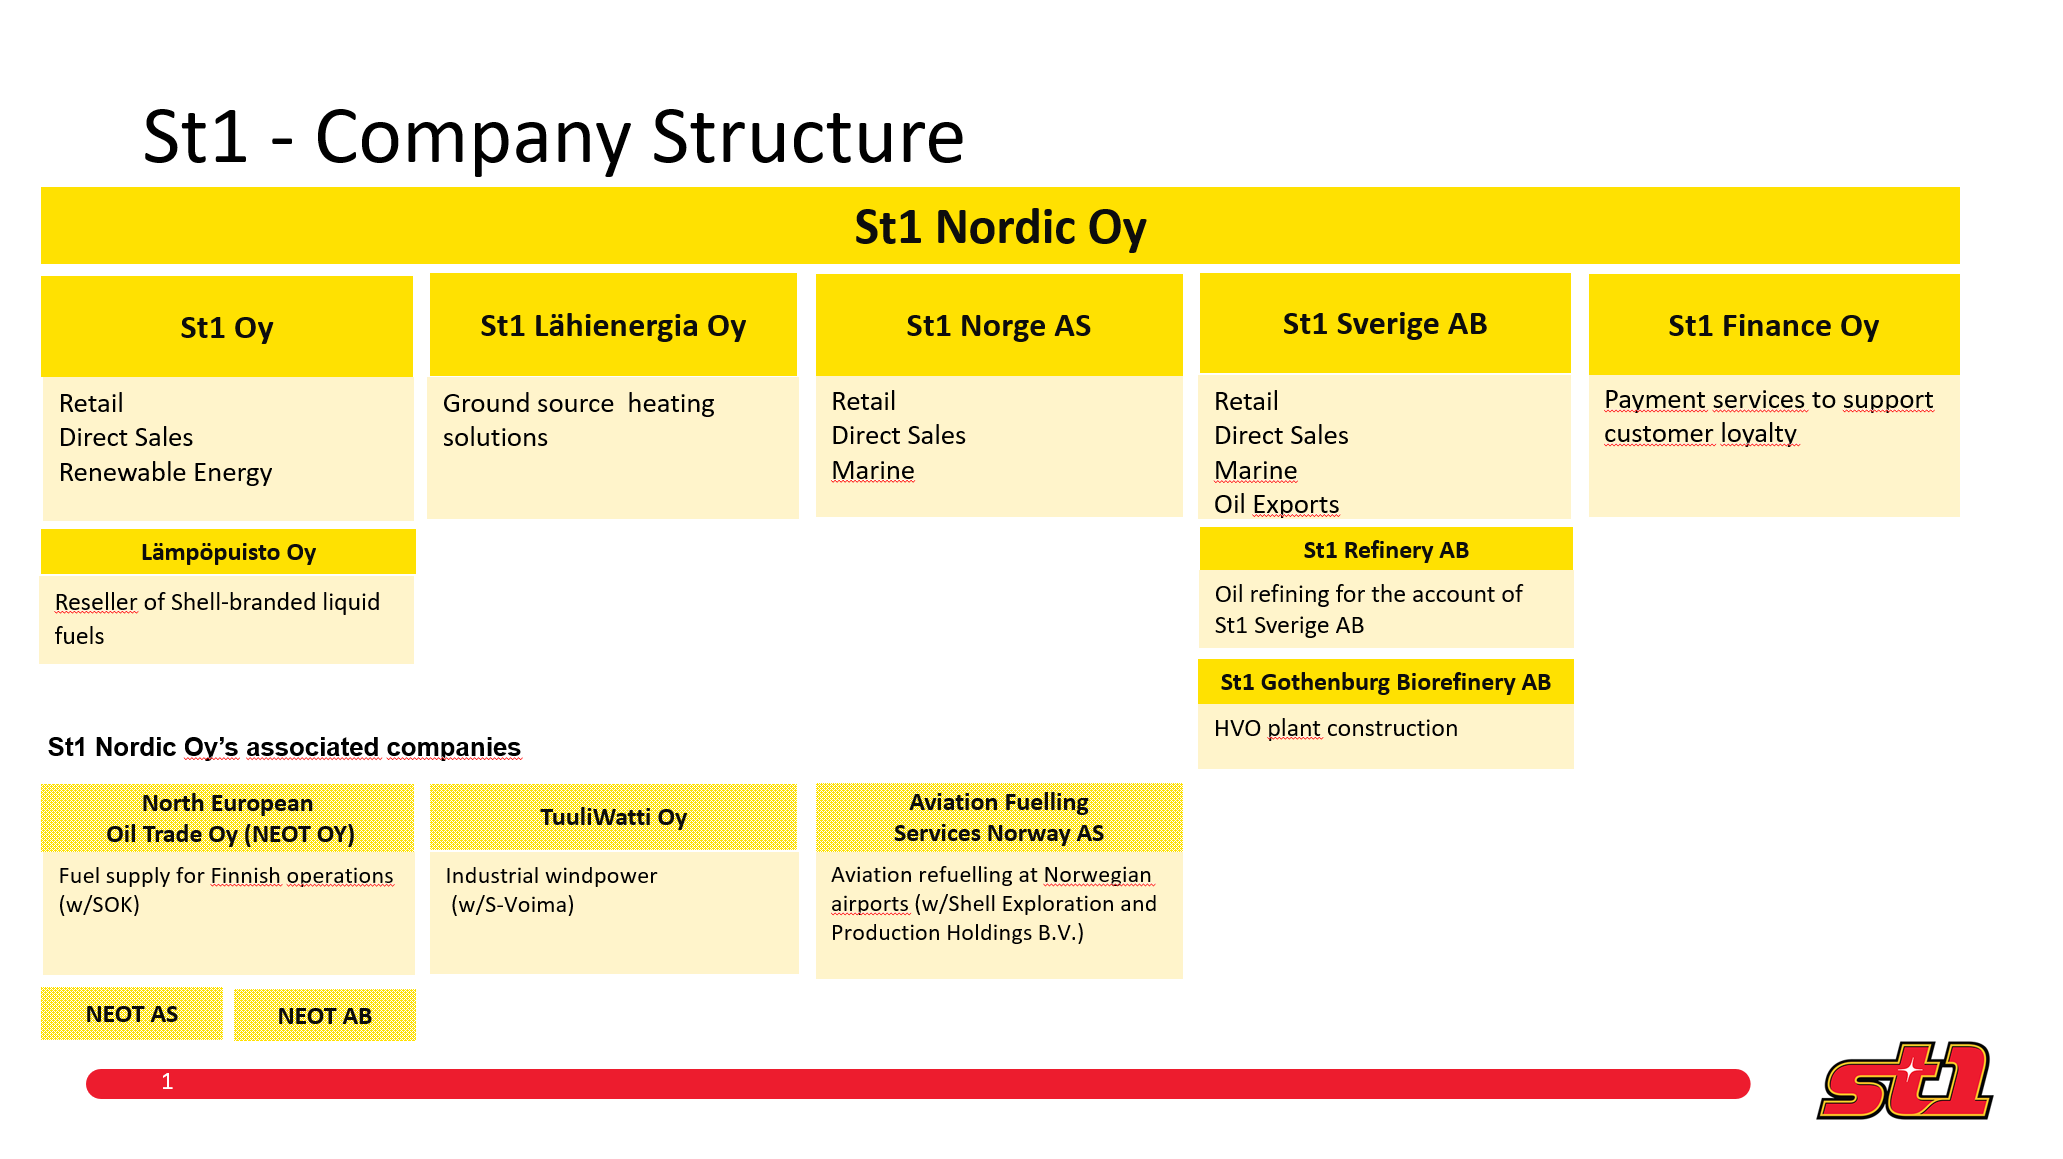 St1-nordic-company-structure